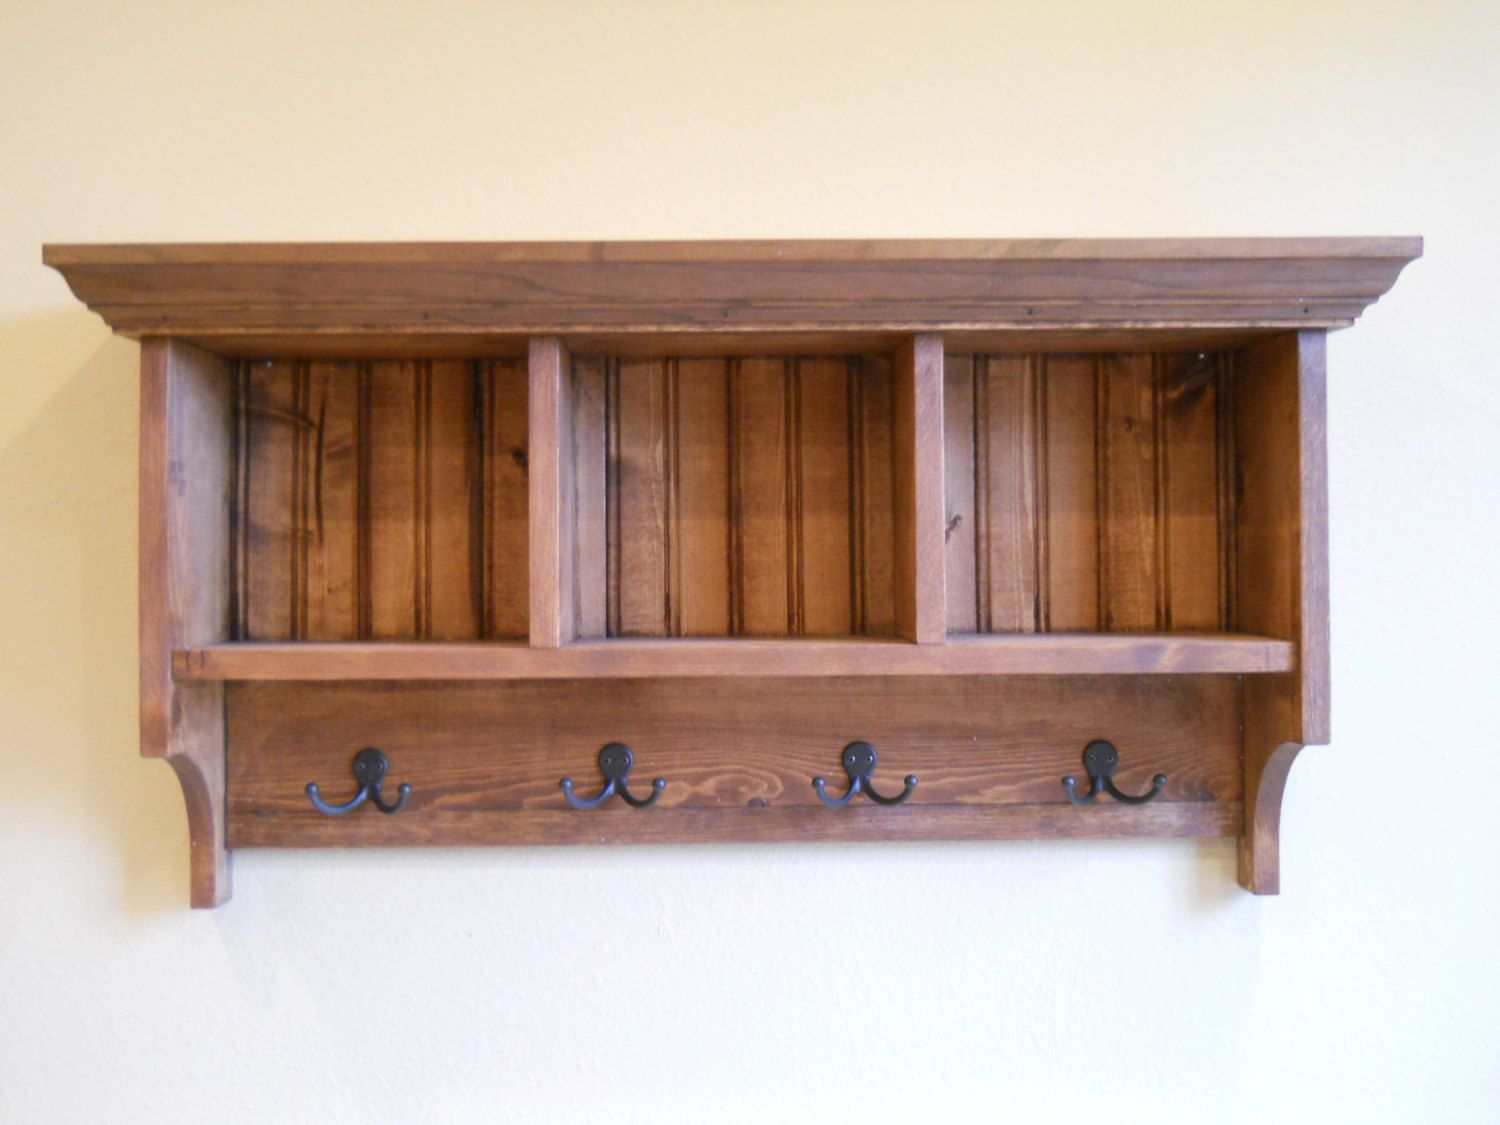 Cubby Shelf,Mud Room Shelf, Wood Cubby, Cubby Storage, Cubby Organizer.  $109.00, Via Etsy.